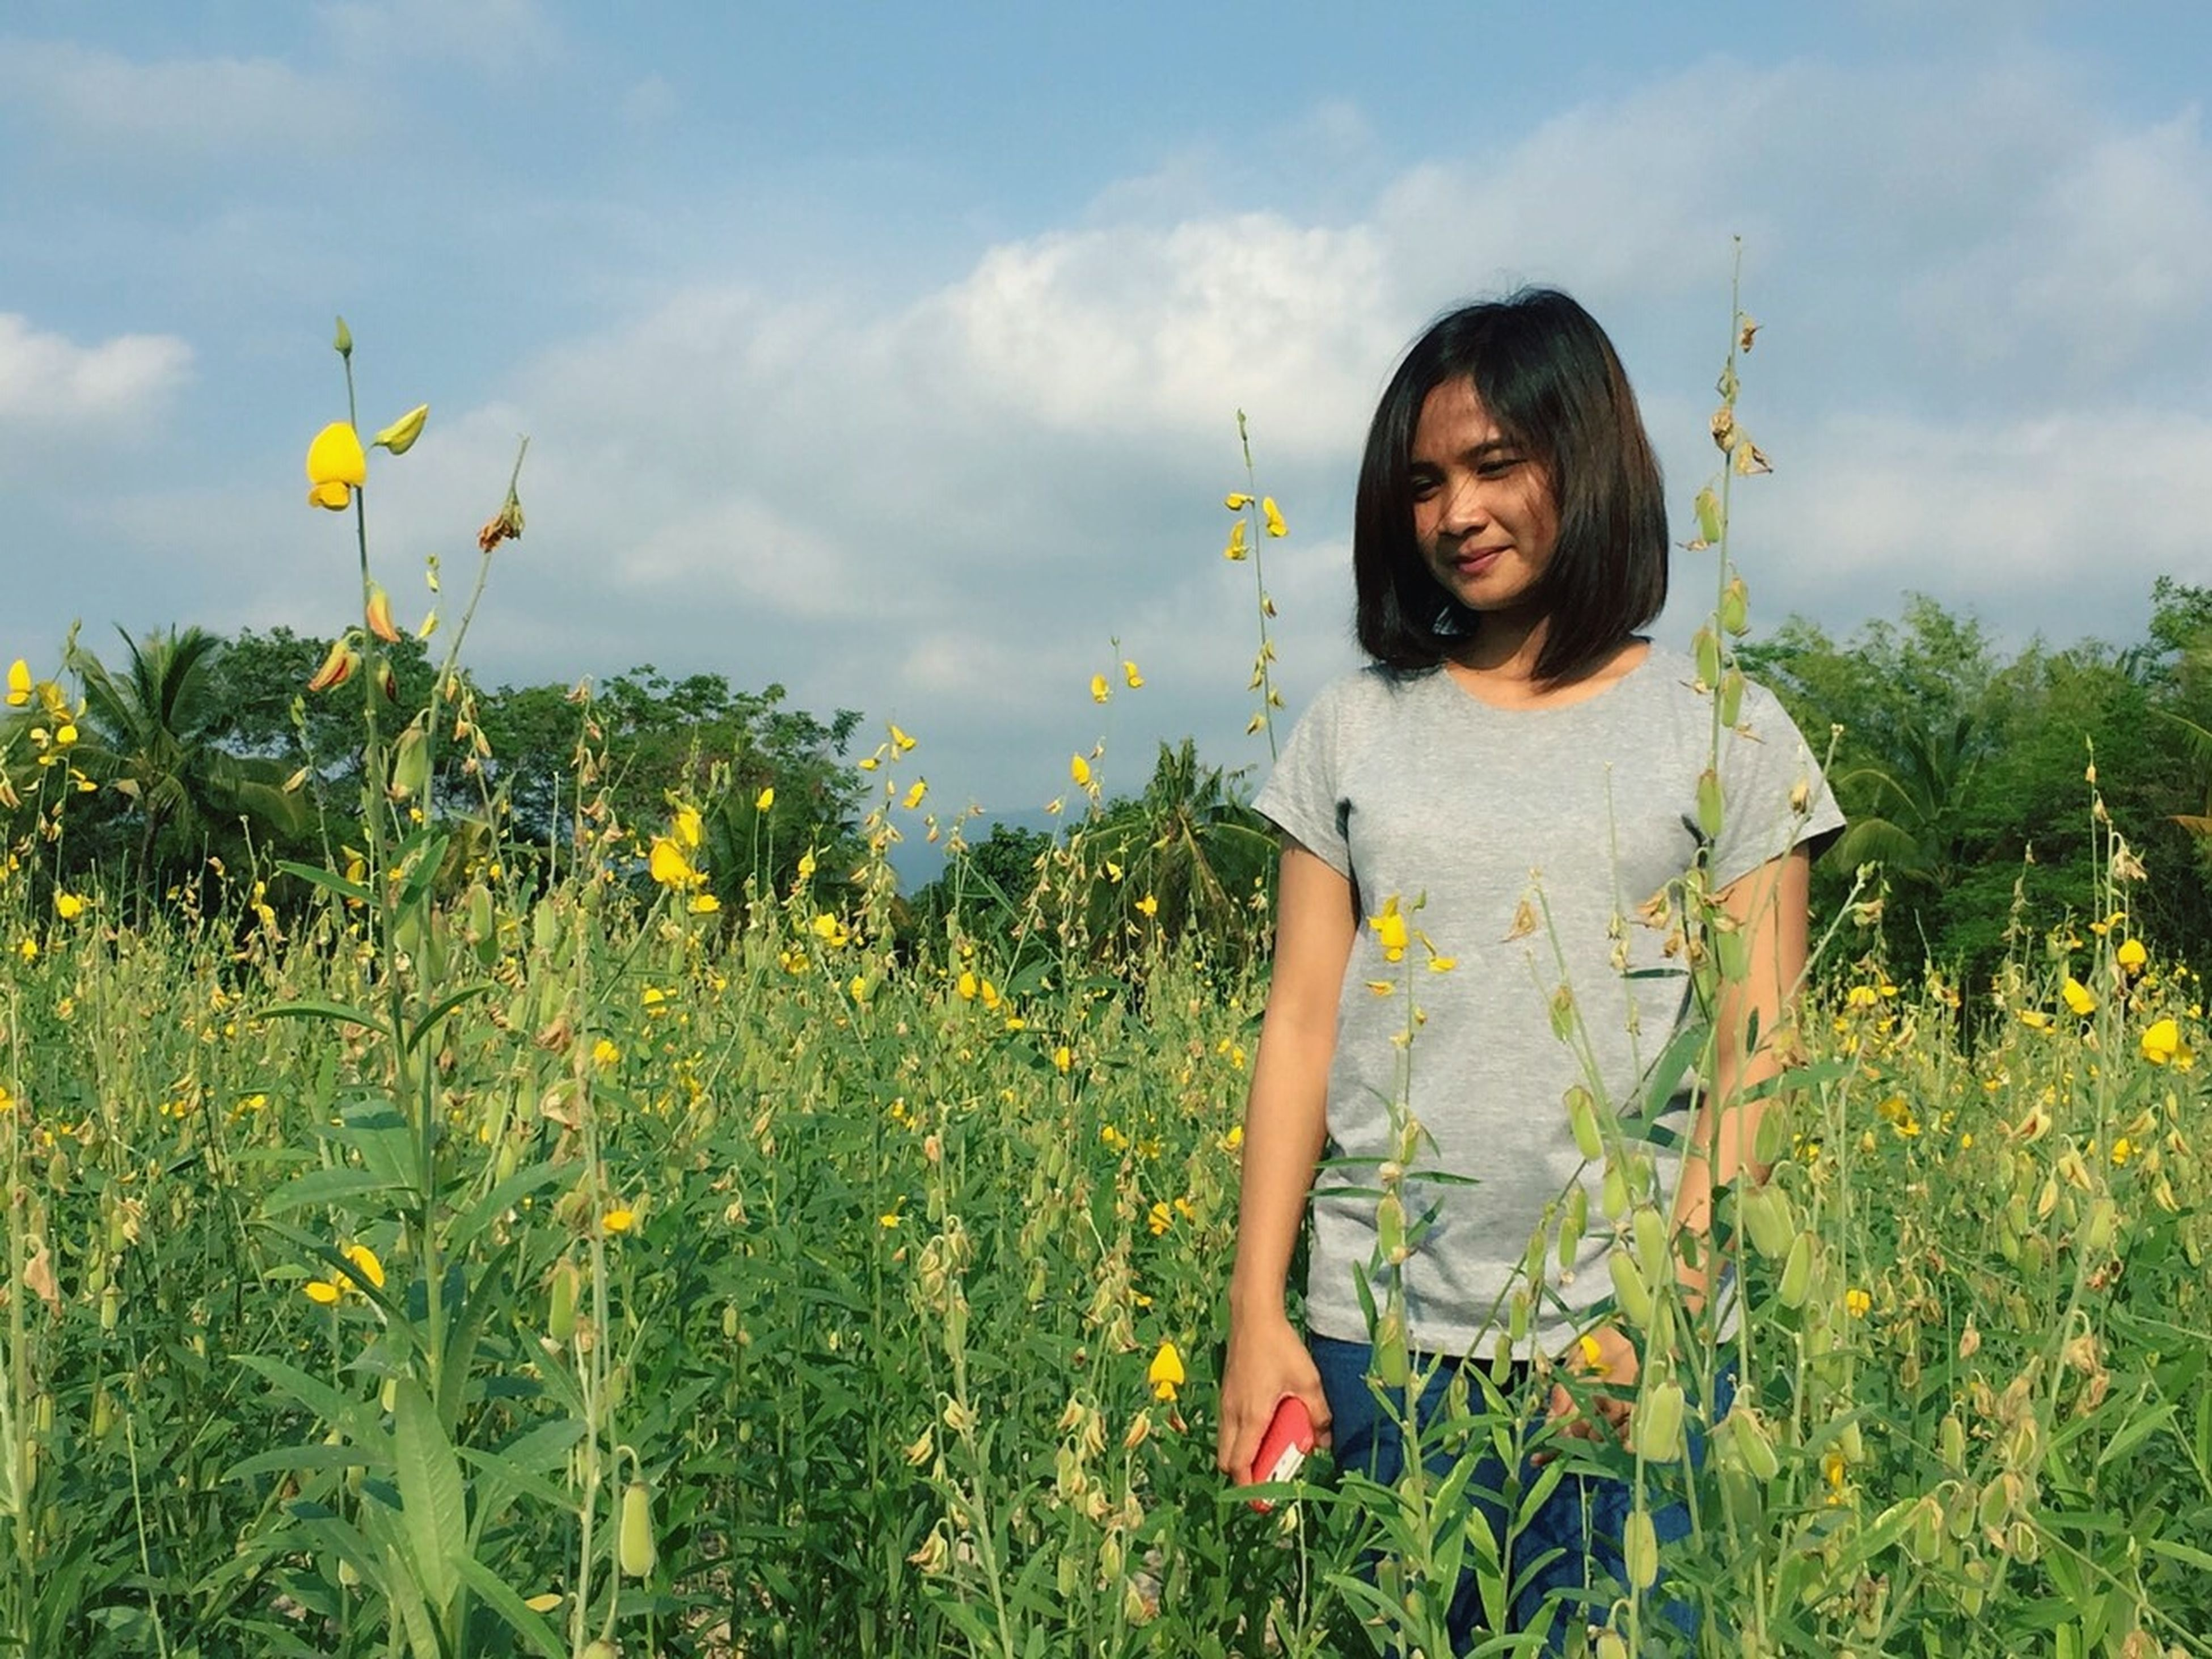 sky, person, young adult, leisure activity, lifestyles, grass, flower, field, standing, young women, casual clothing, growth, plant, cloud - sky, tree, smiling, nature, three quarter length